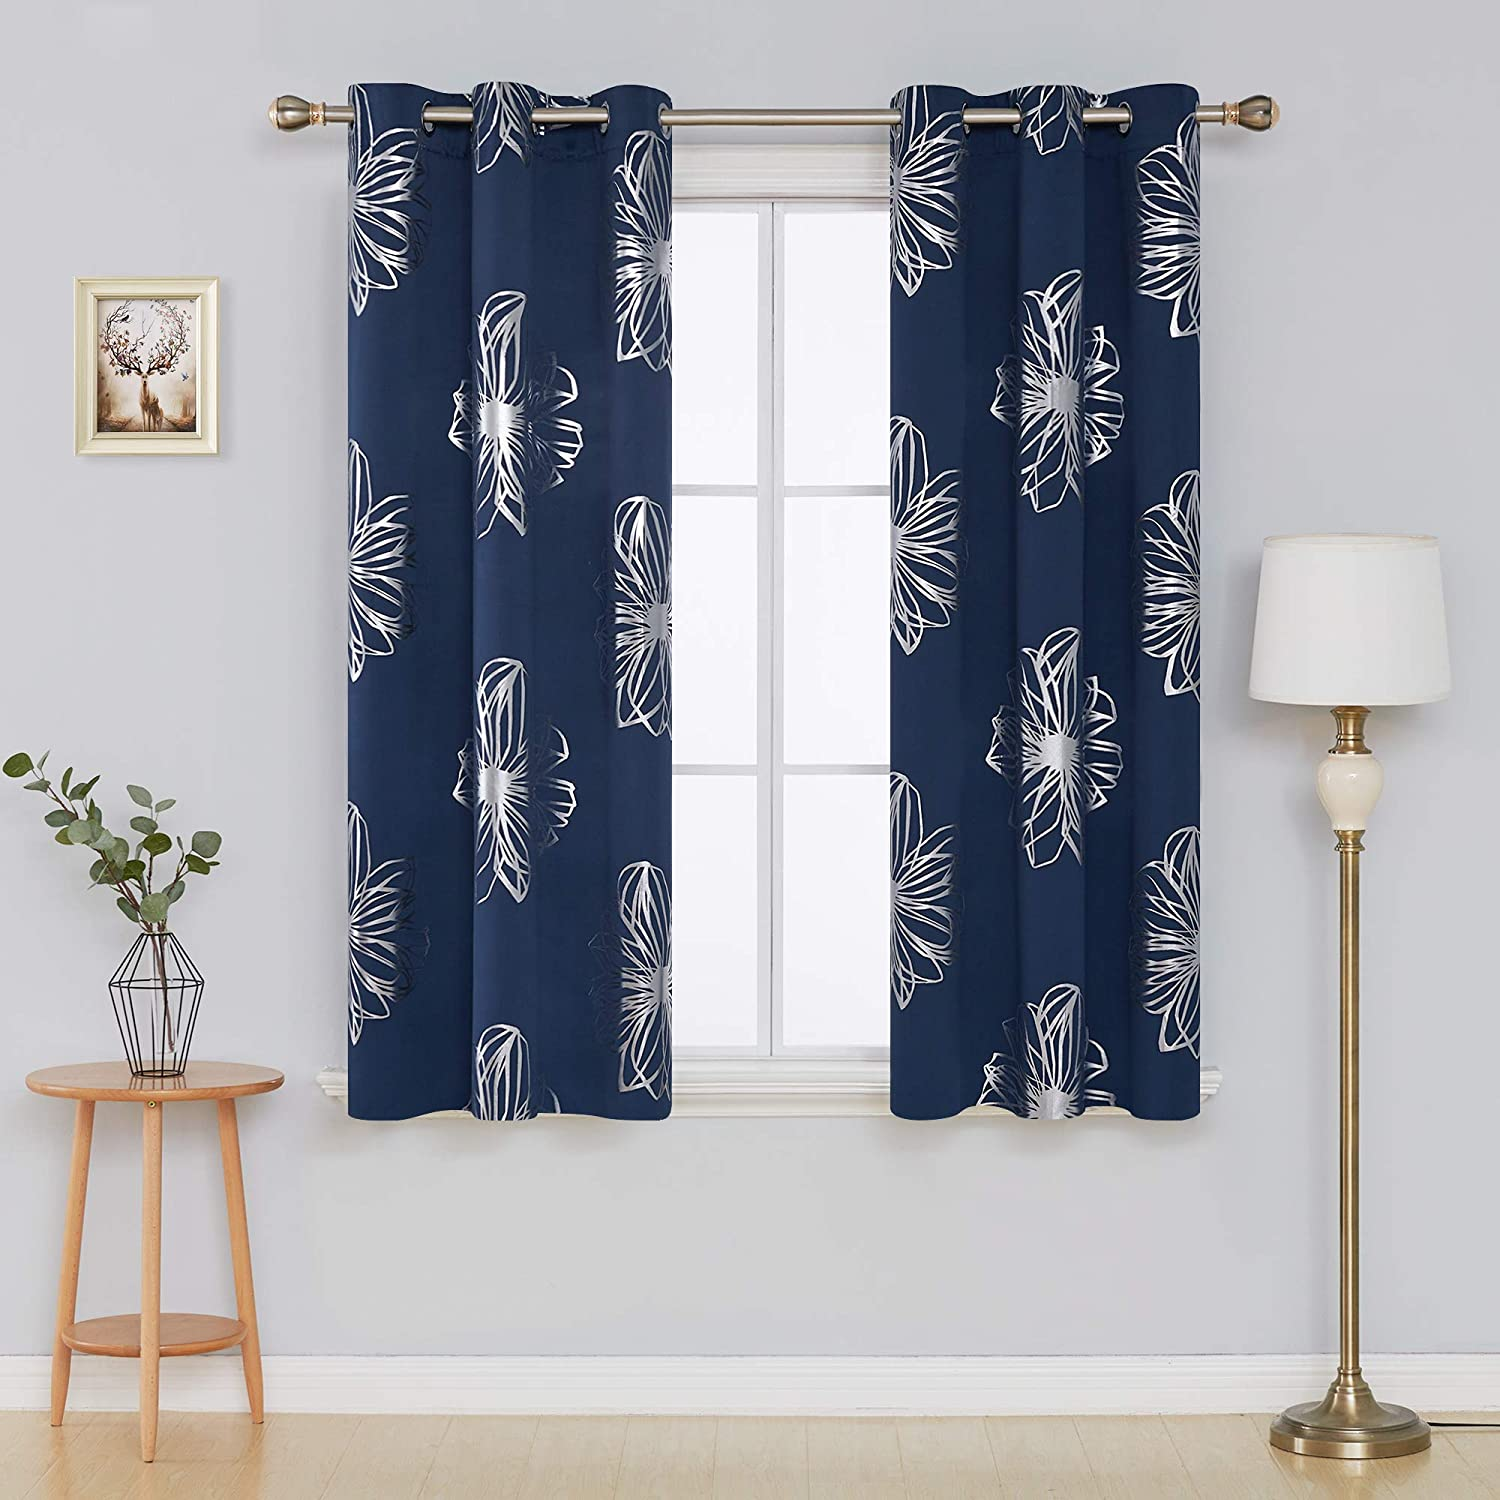 Deconovo Light Gray Flower Foil Printed Thermal Insulated Bedroom Grommet Blackout Curtains for Bedroom 52 W x 63 L Set of 2